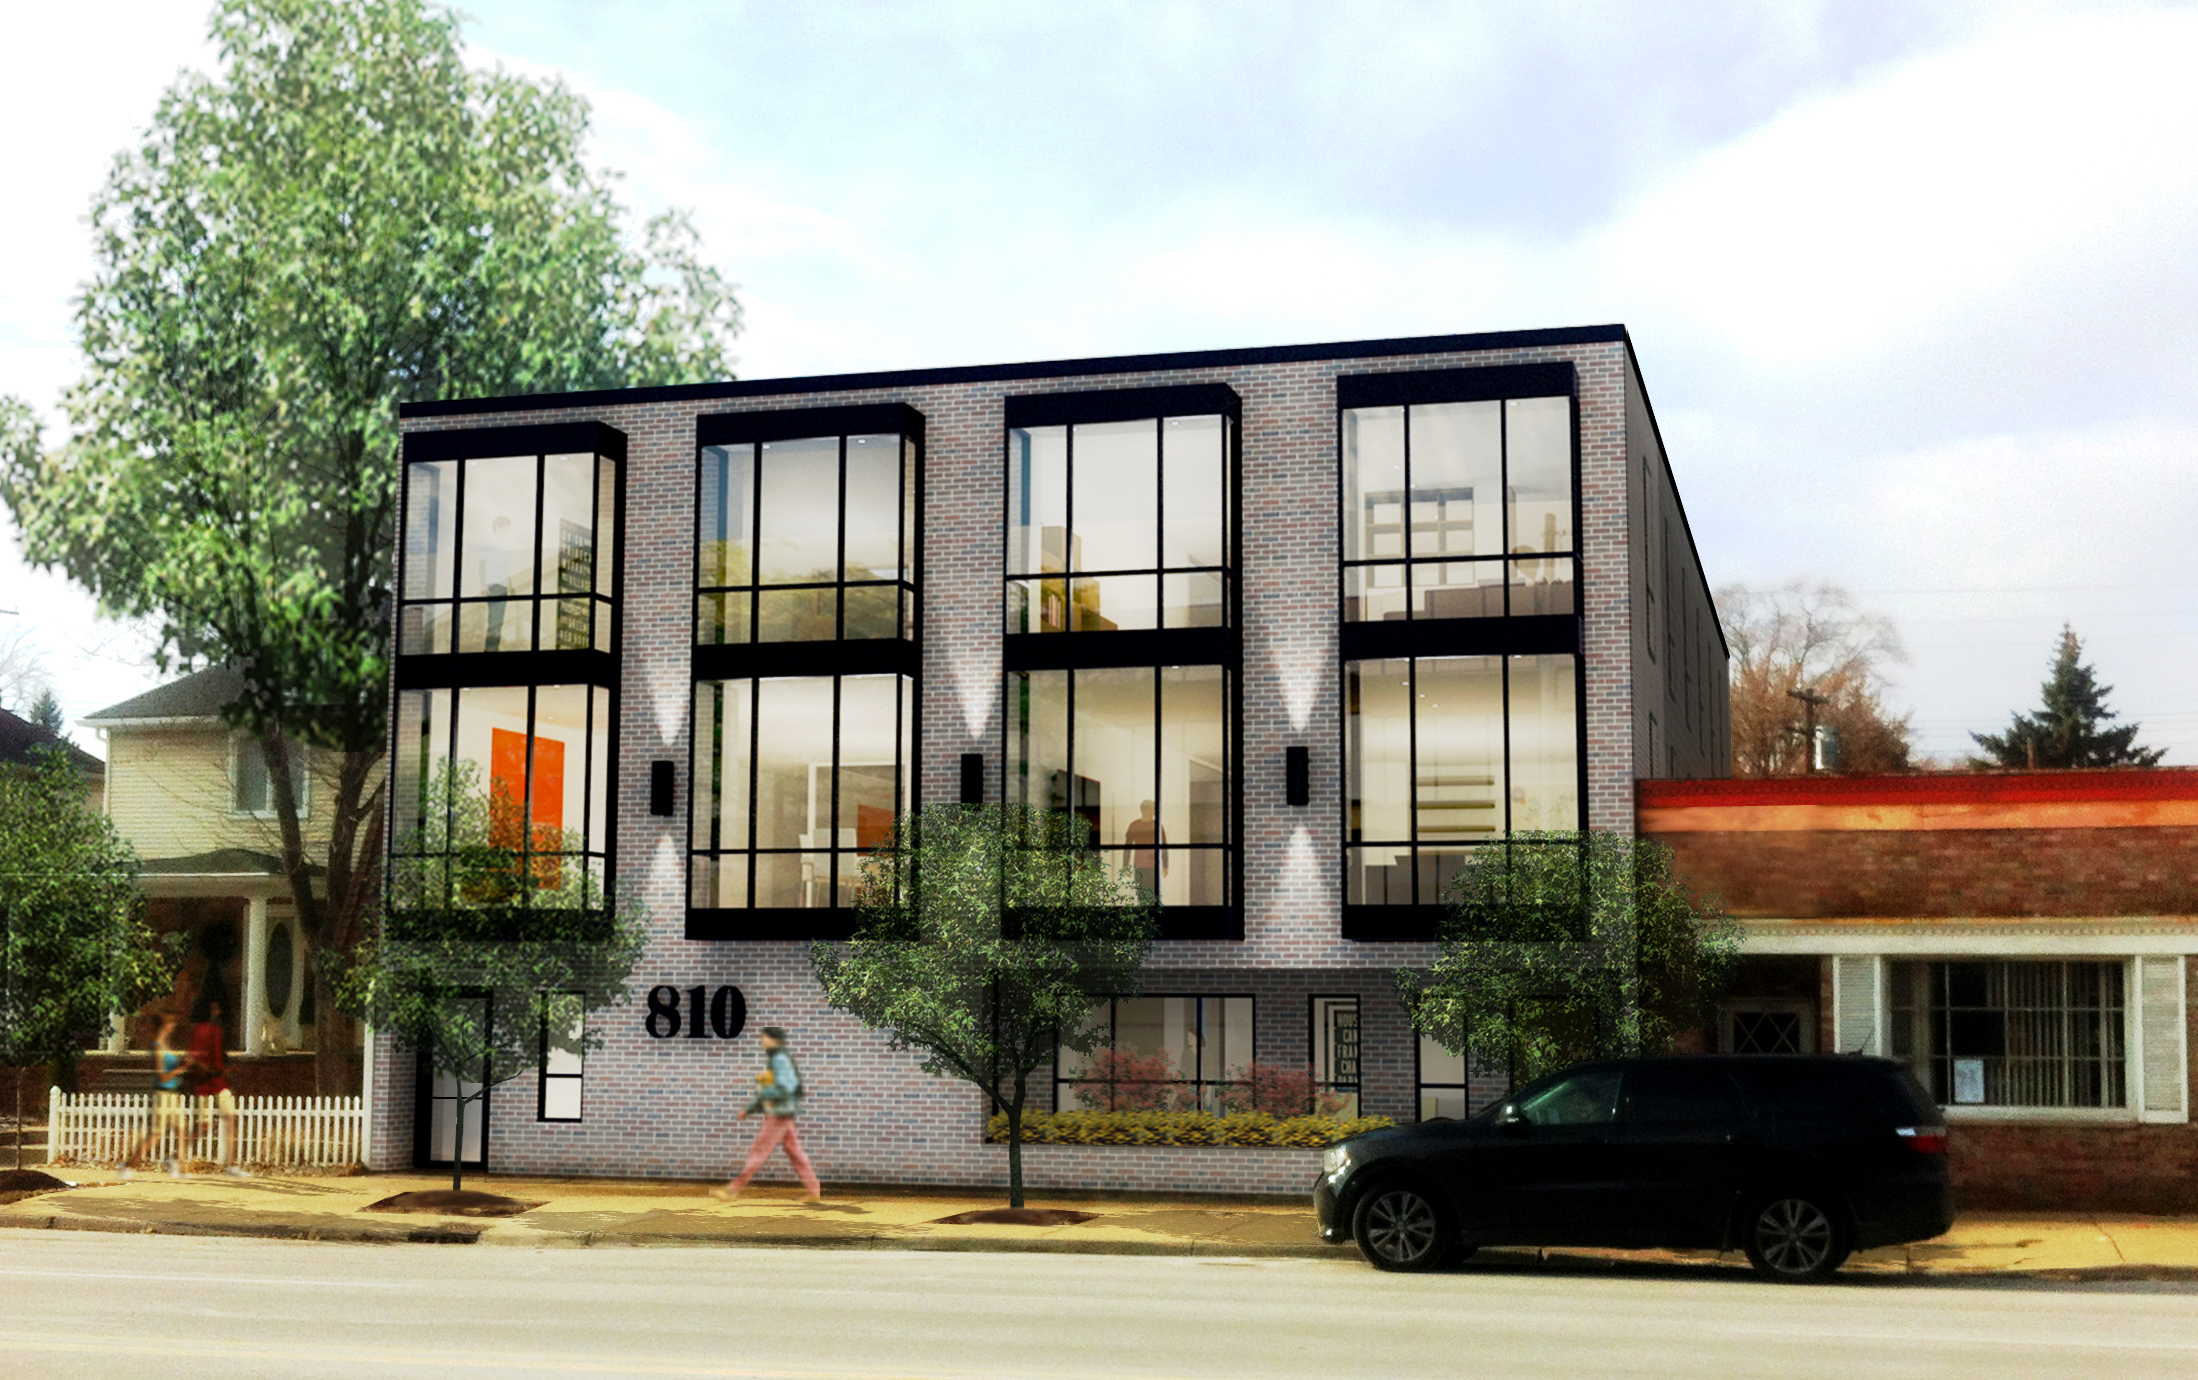 Coming soon, modern living in Royal Oak, Michigan. 5 new residential units.